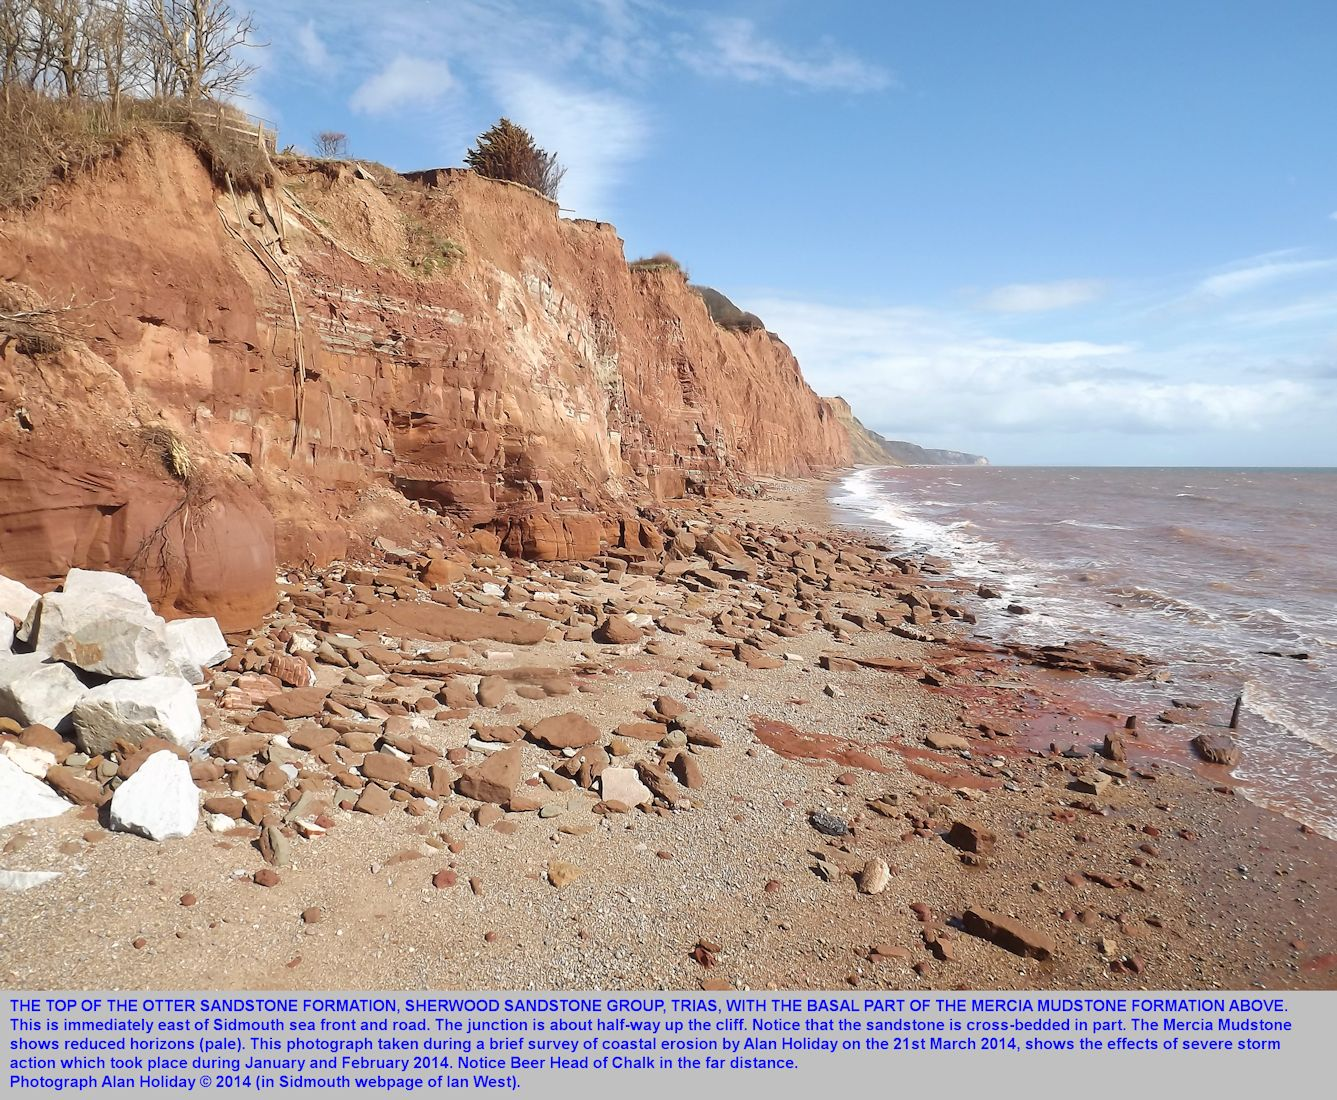 The junction of the Otter Sandstone and the Mercia Mudstone of the Trias, photographed at Sidmouth, Devon, by Alan Holiday on 21st February 2014, showing erosion from winter storms